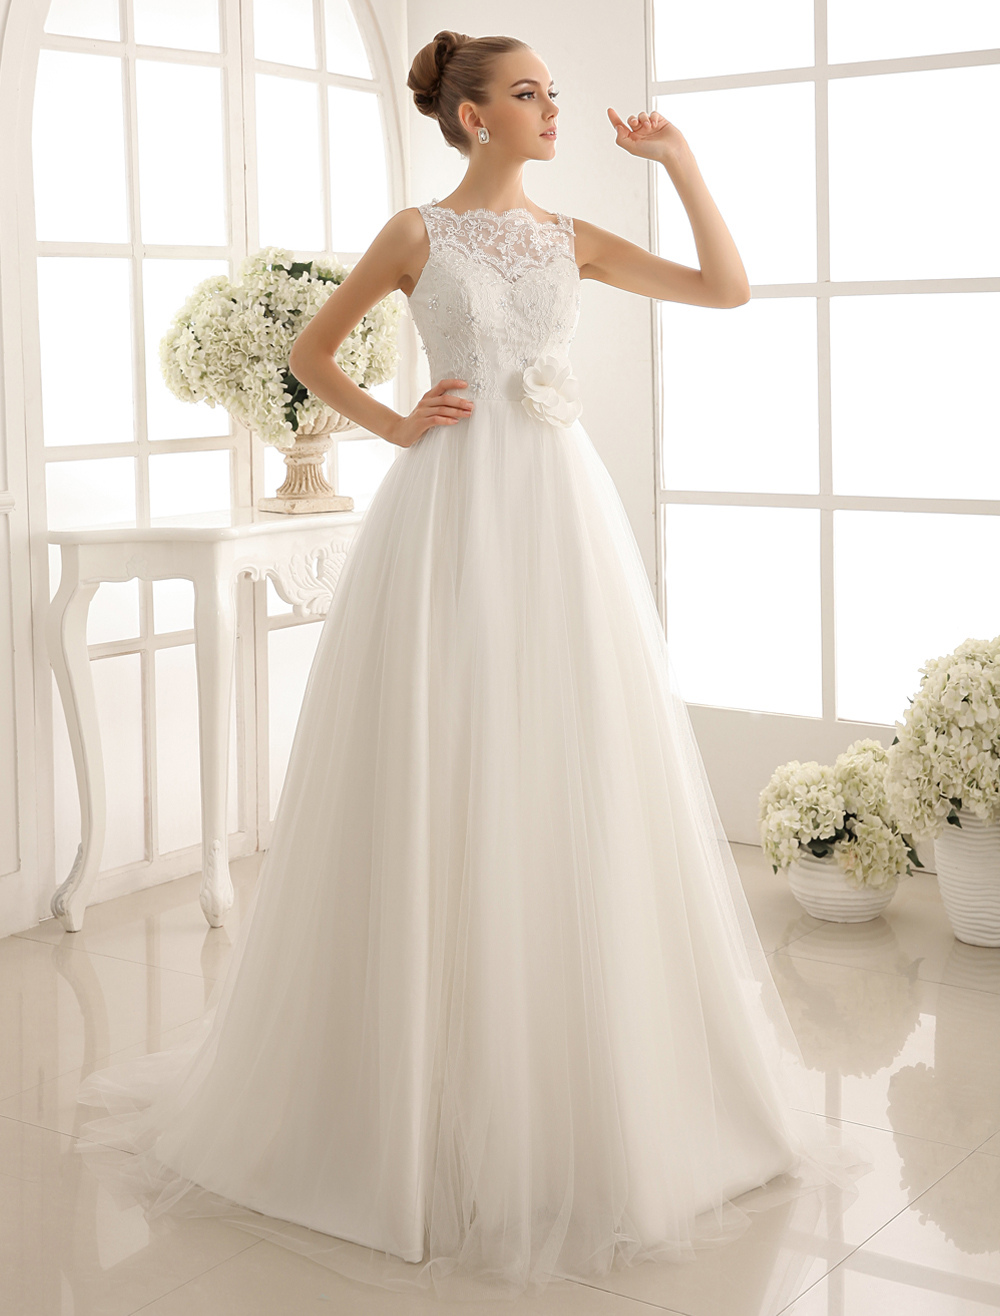 Bateau Neck Wedding Gown With Chapel Train